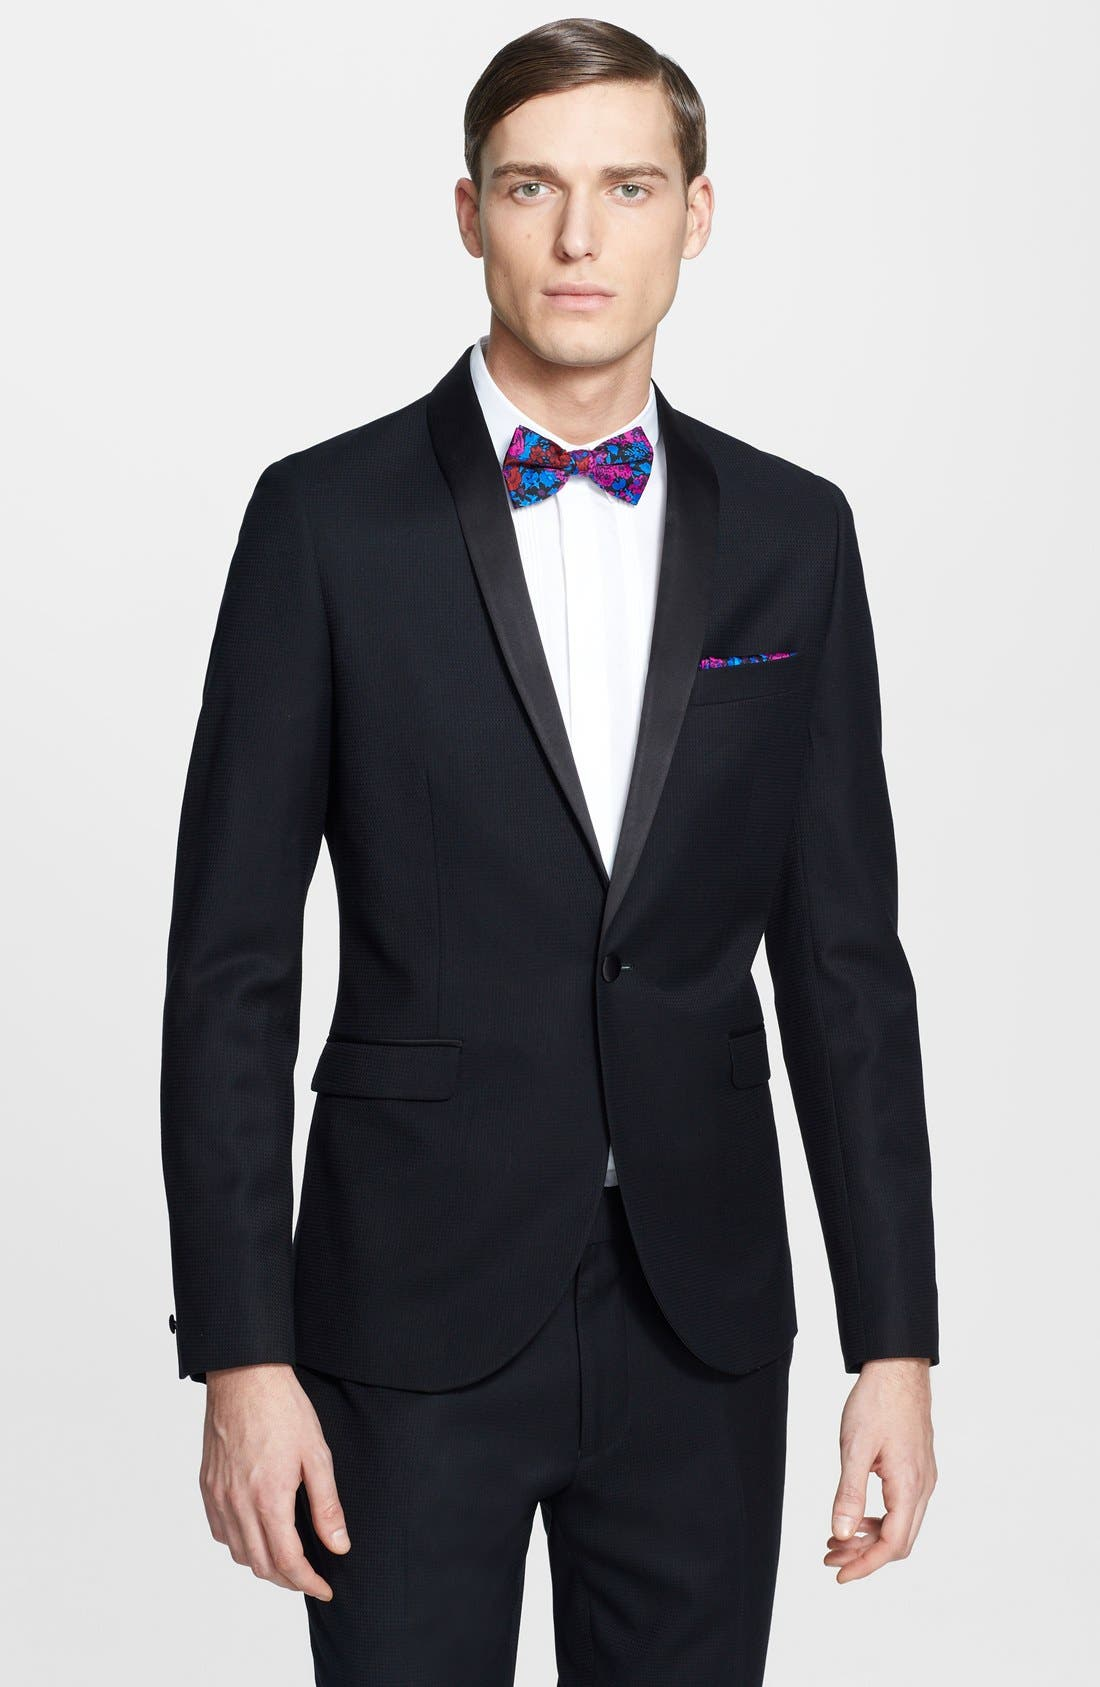 Alternate Image 1 Selected - Topman Skinny Fit Jacquard Tuxedo Jacket